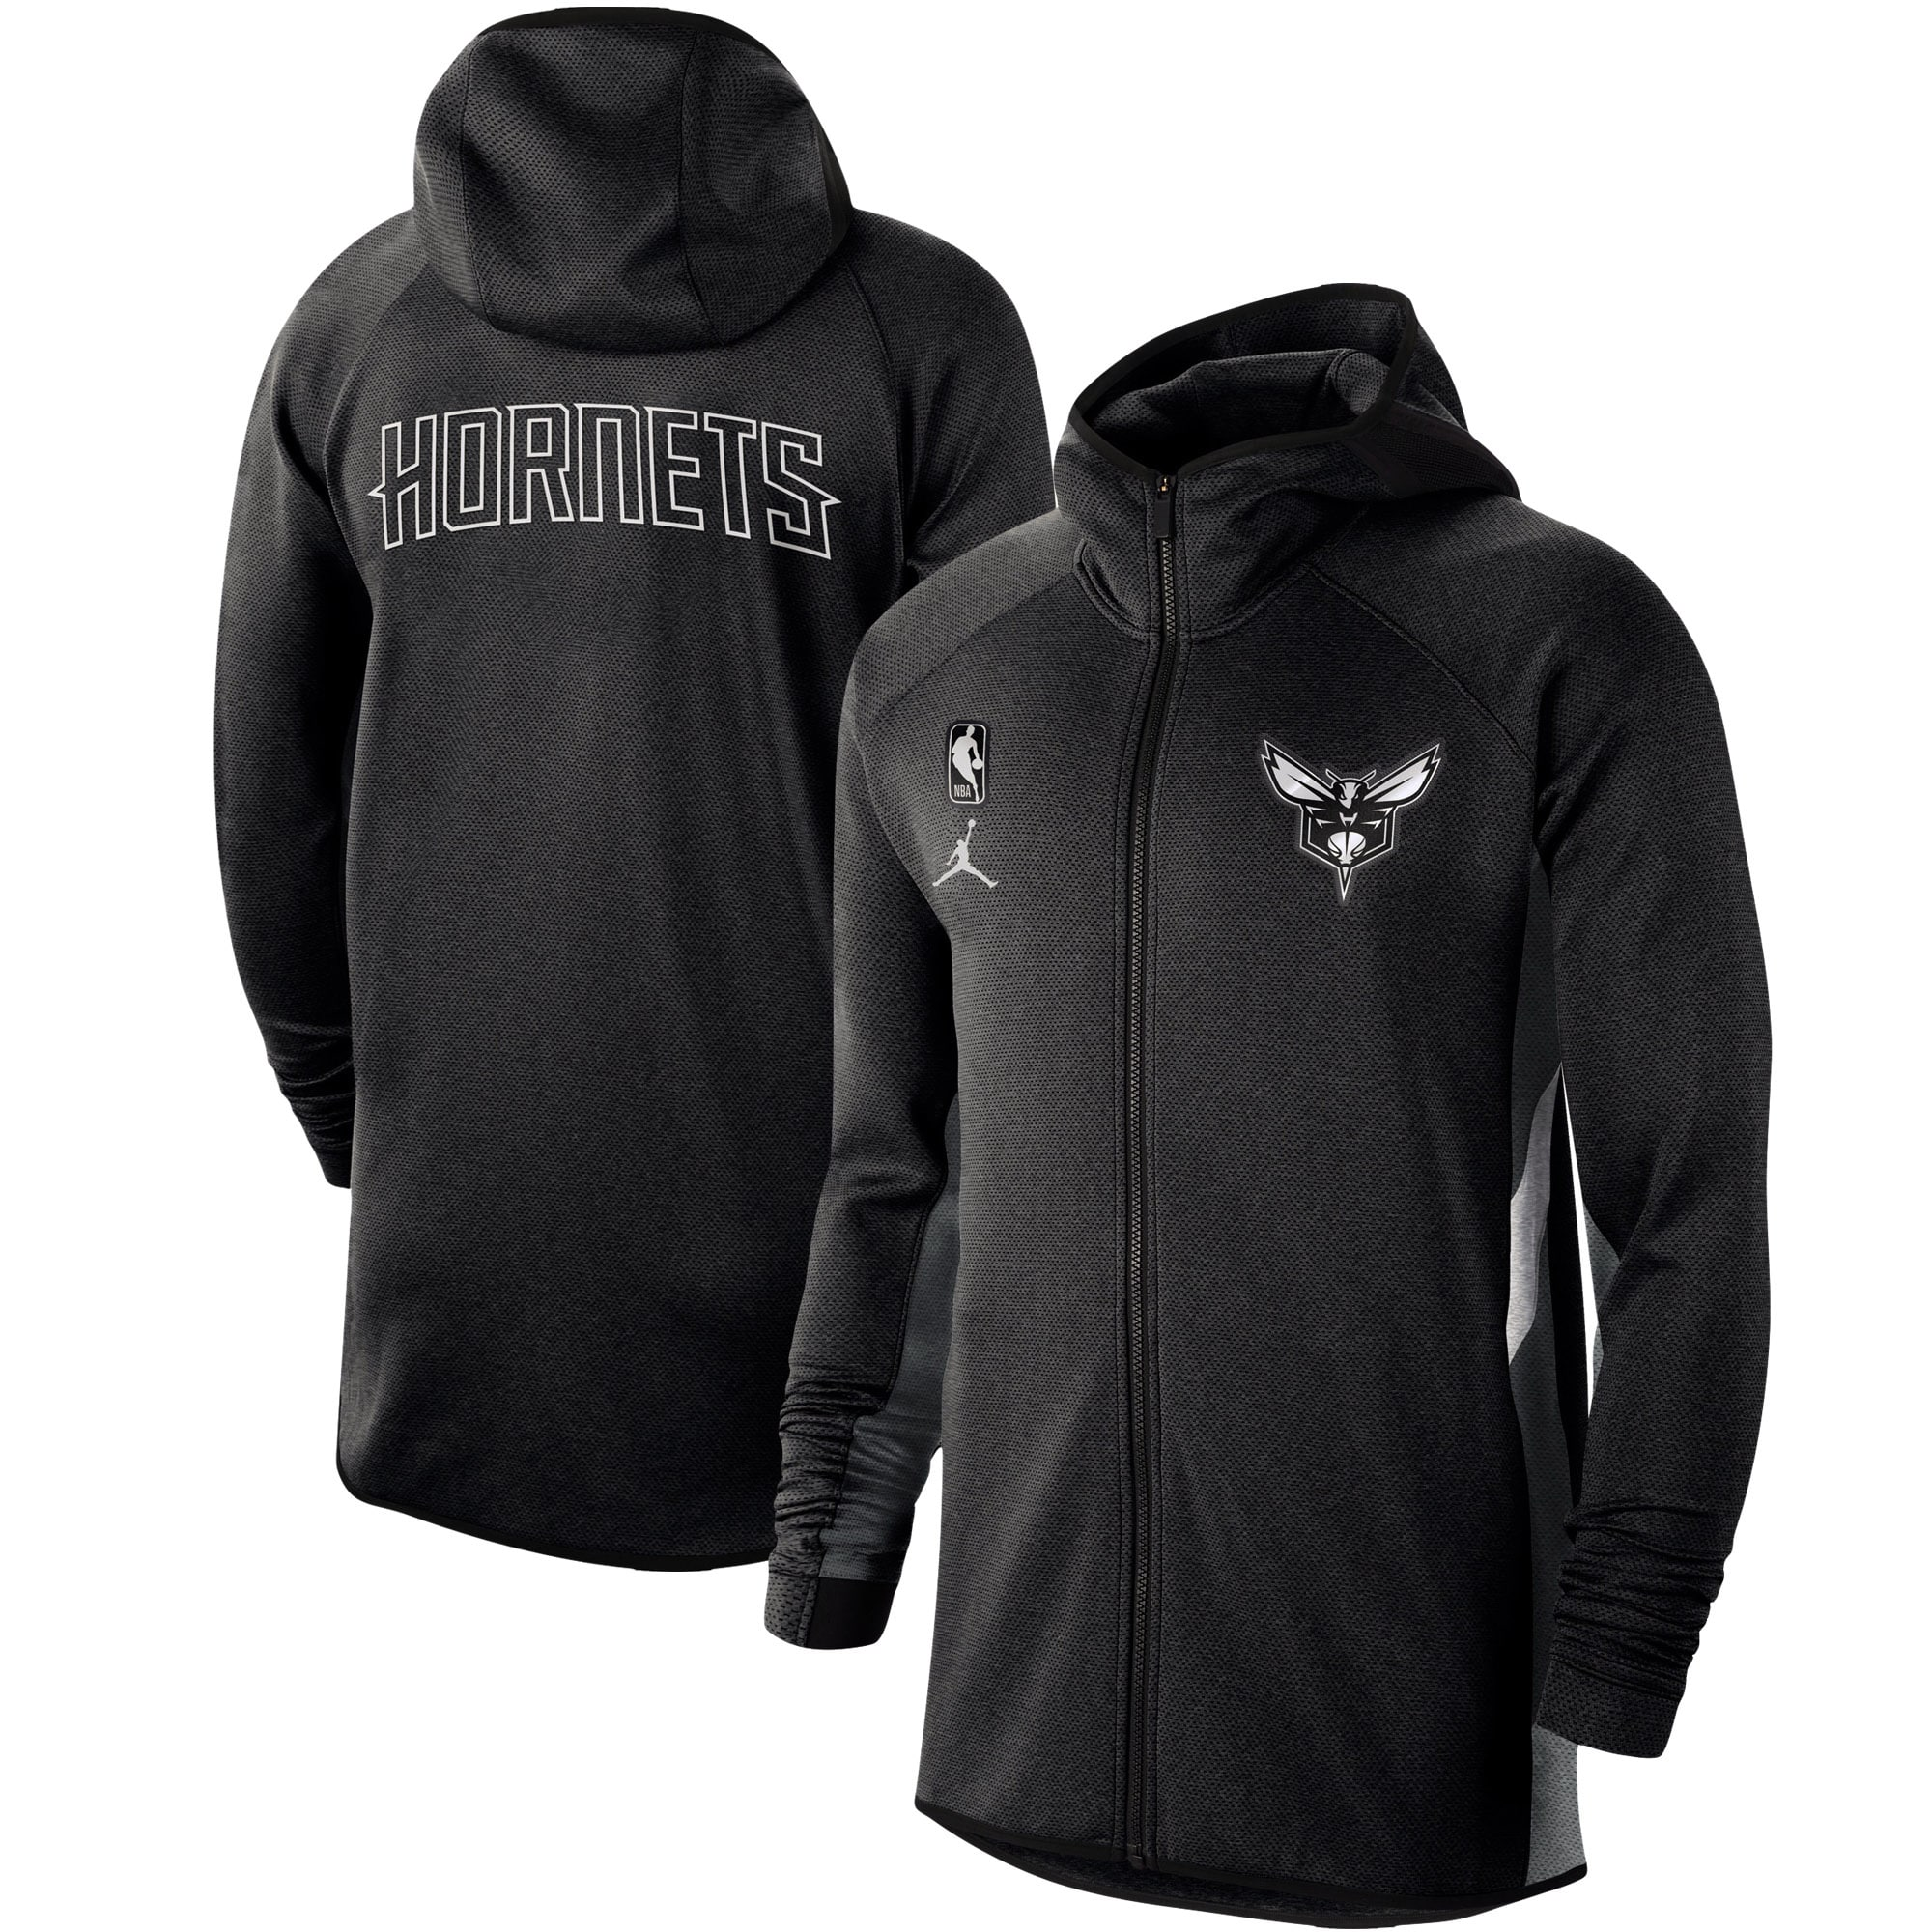 Charlotte Hornets Nike Authentic Showtime Therma Flex Performance Full-Zip Hoodie - Heathered Black